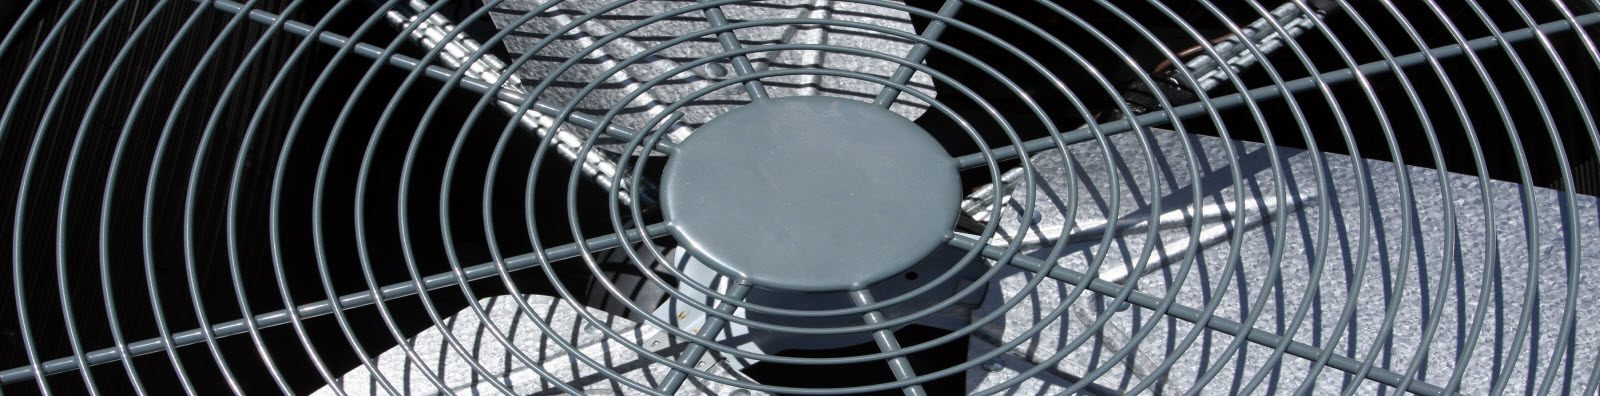 Hal Mechanical Las Vegas Nv Air Conditioning Services